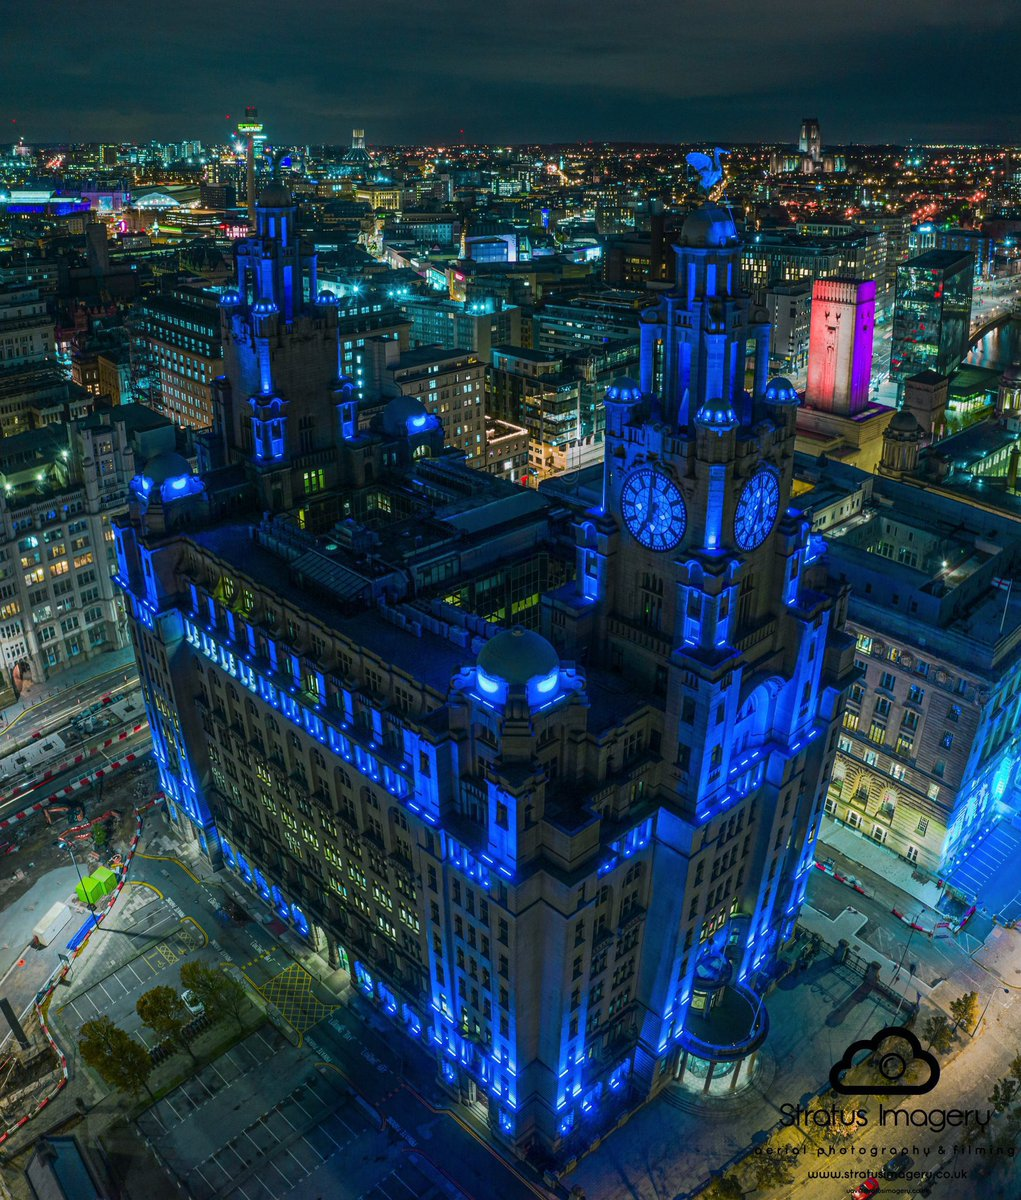 Liverpool's iconic Royal Liver Building lit up blue last night in honour of #CaptainSirTomMoore. A true inspiration.💙  #RIPCaptainTom #Liverpool